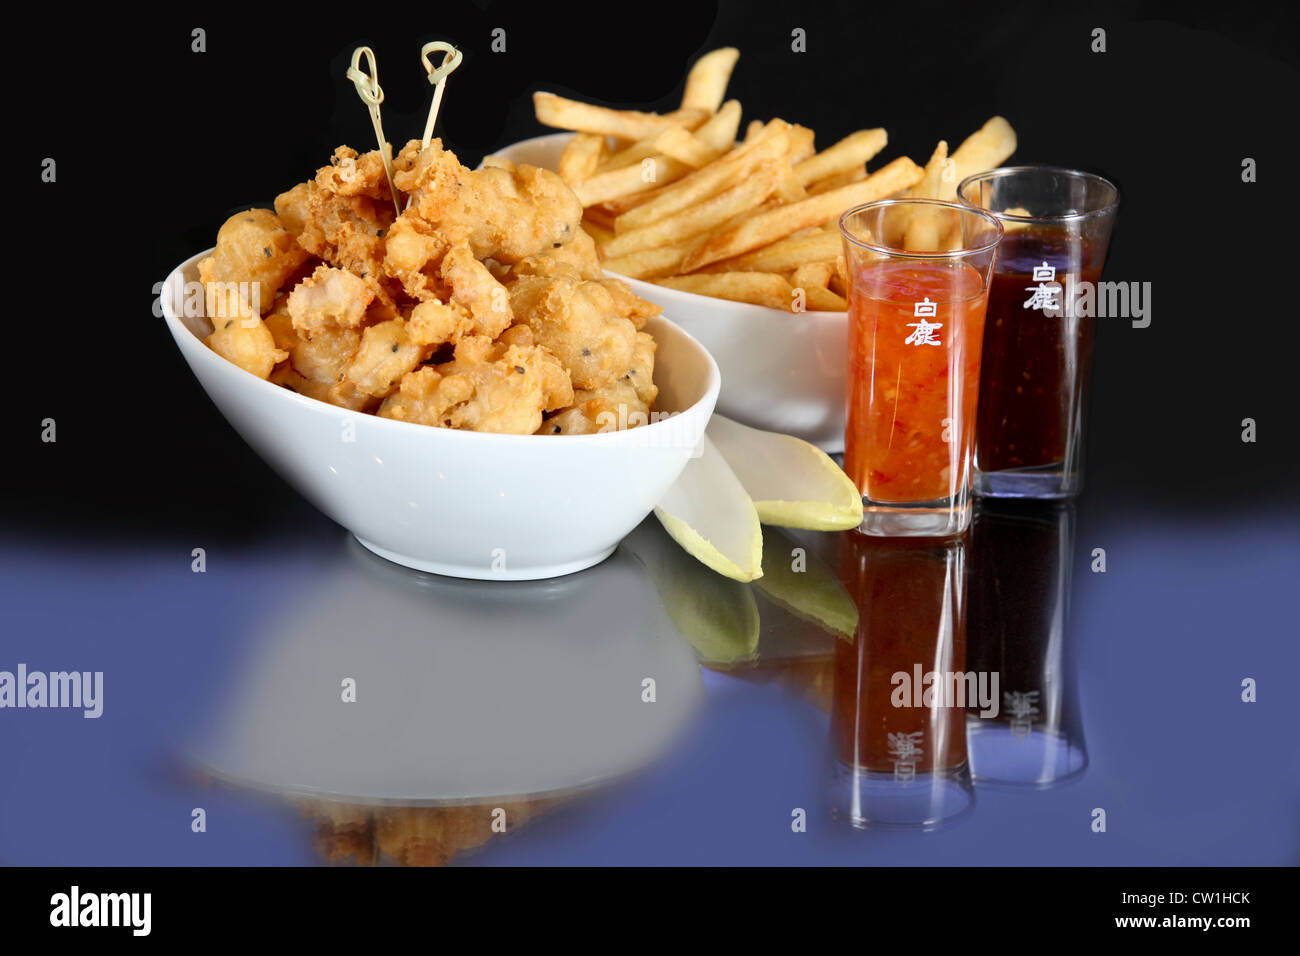 Chicken Tampura - Deep fried chicken and batter with french fries Stock Photo